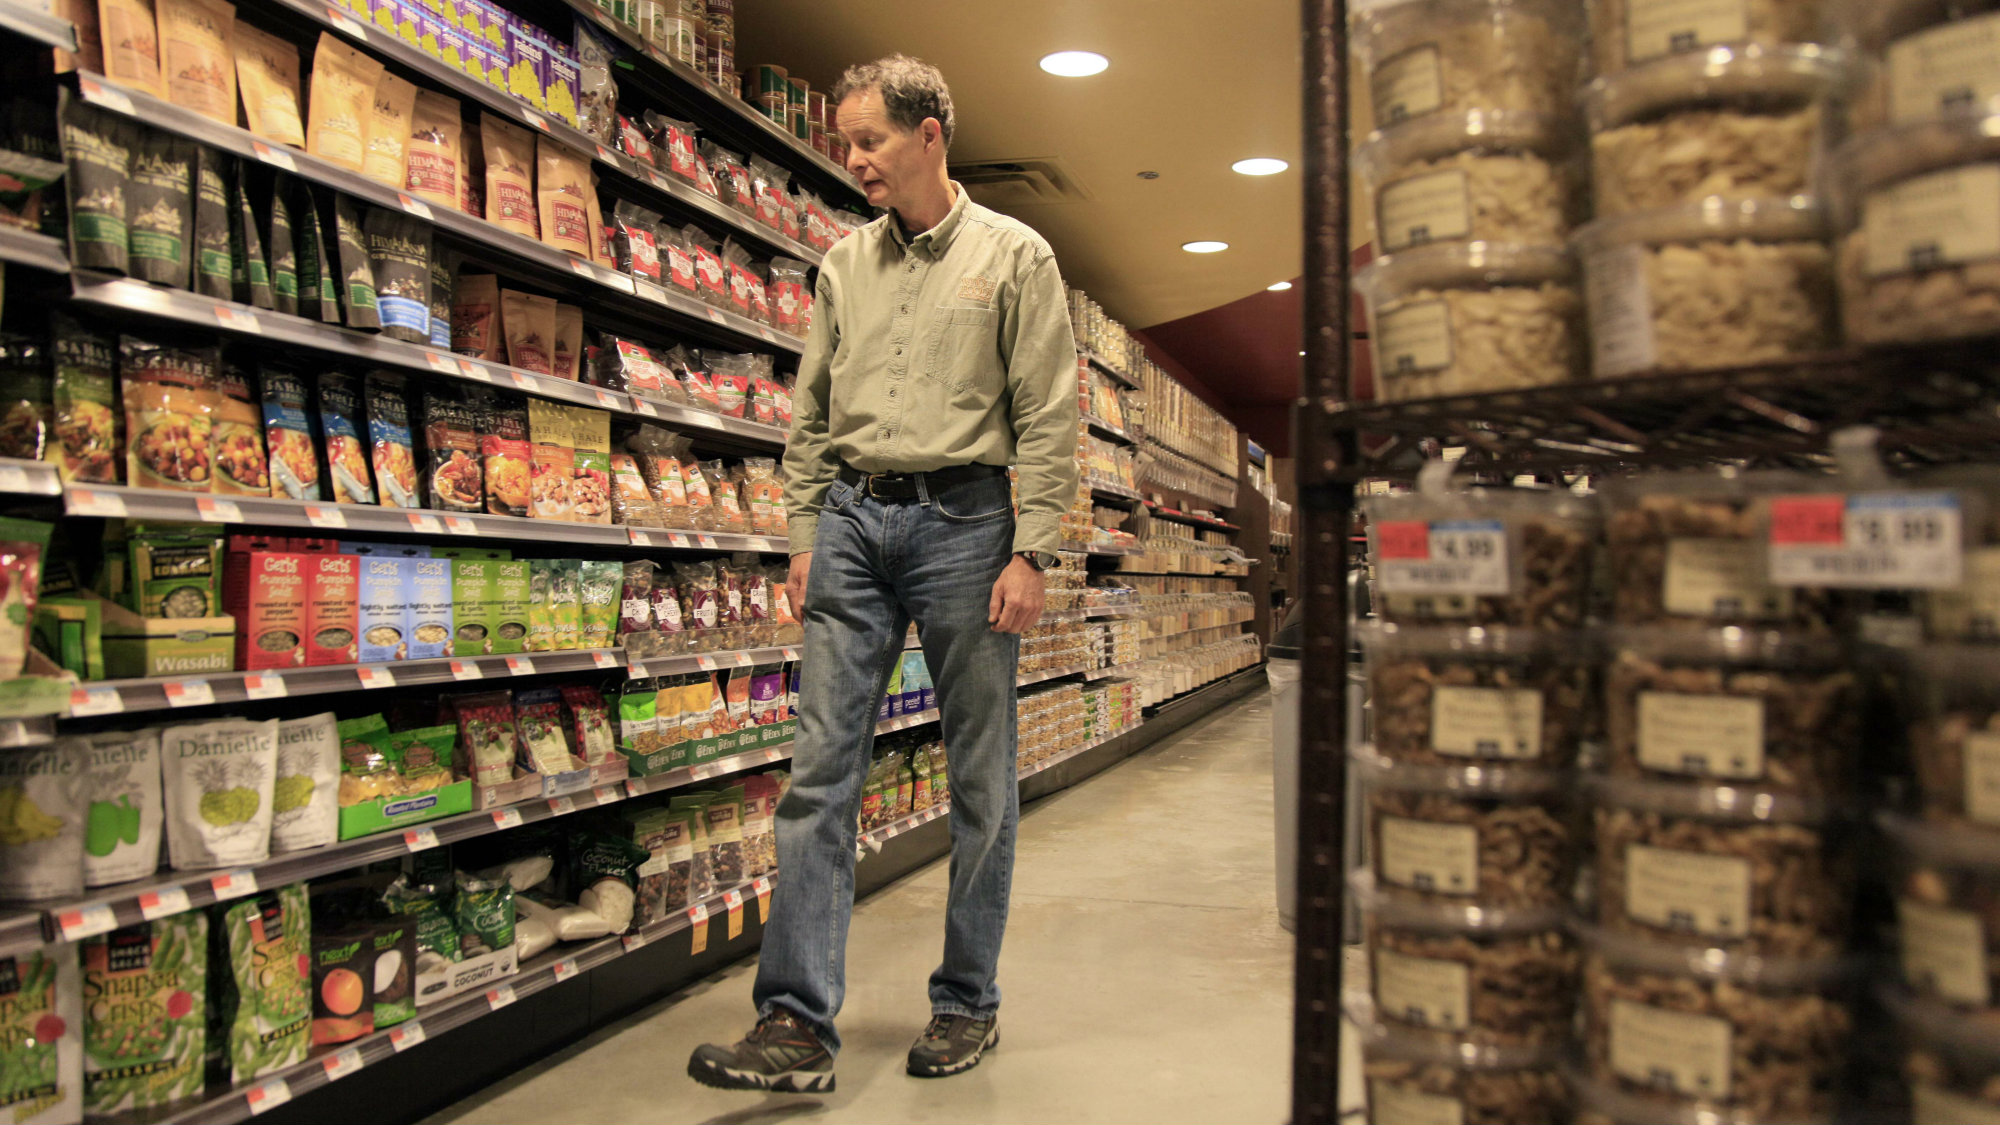 Whole Foods CEO John Mackey is photographed walking through one of his stores on New York's Upper West Side, Wednesday, Nov. 18, 2009.